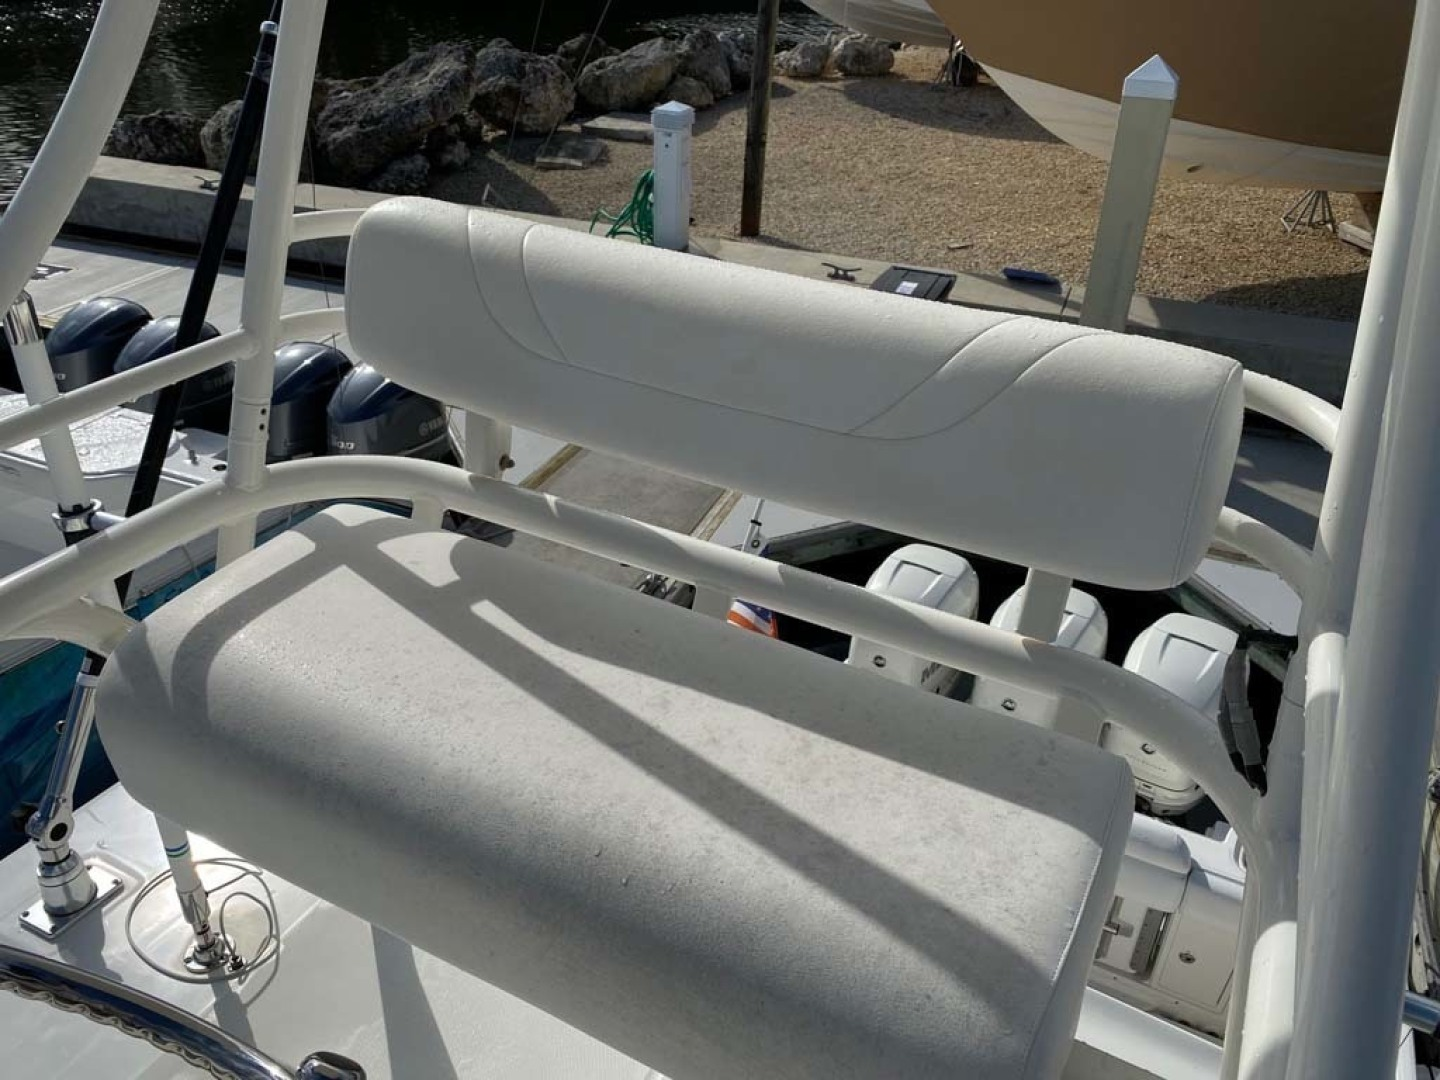 Boston Whaler-370 Outrage 2015-Reel Equity Fort Lauderdale-Florida-United States-Tower Helm Seat-1301995 | Thumbnail